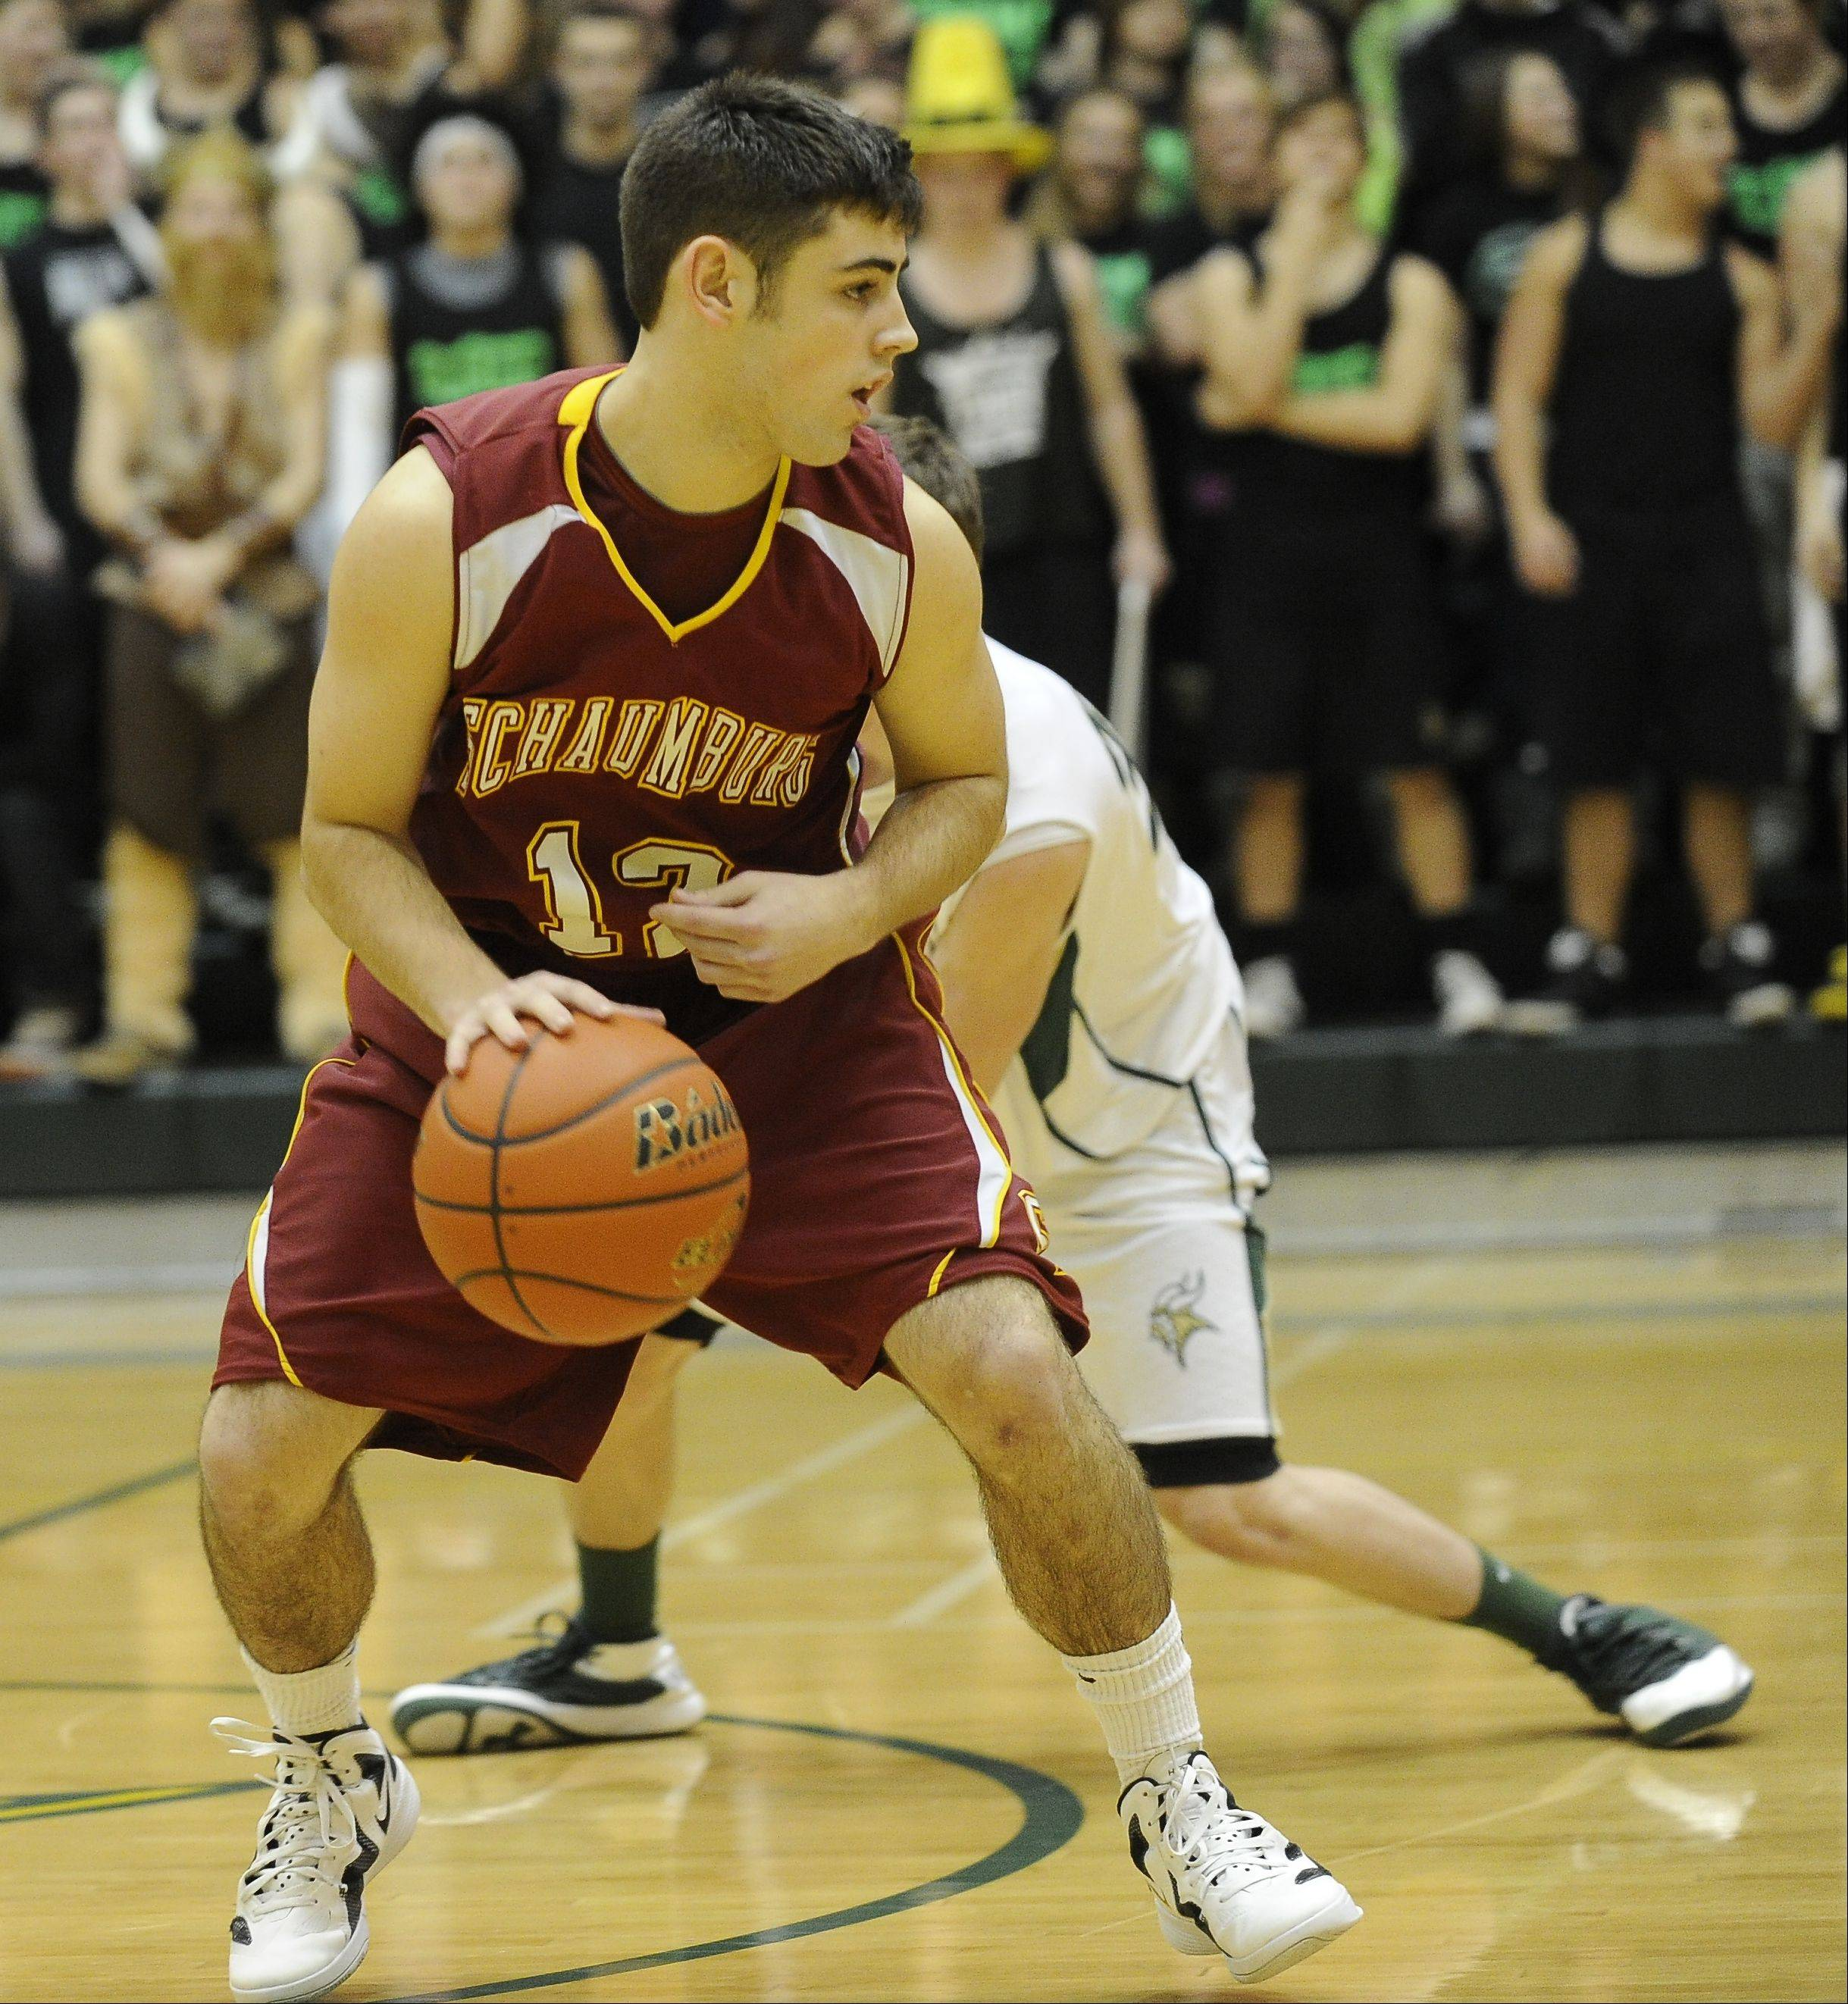 Images from the Schaumburg vs. Fremd boys basketball game in Palatine on Friday, February 4th.